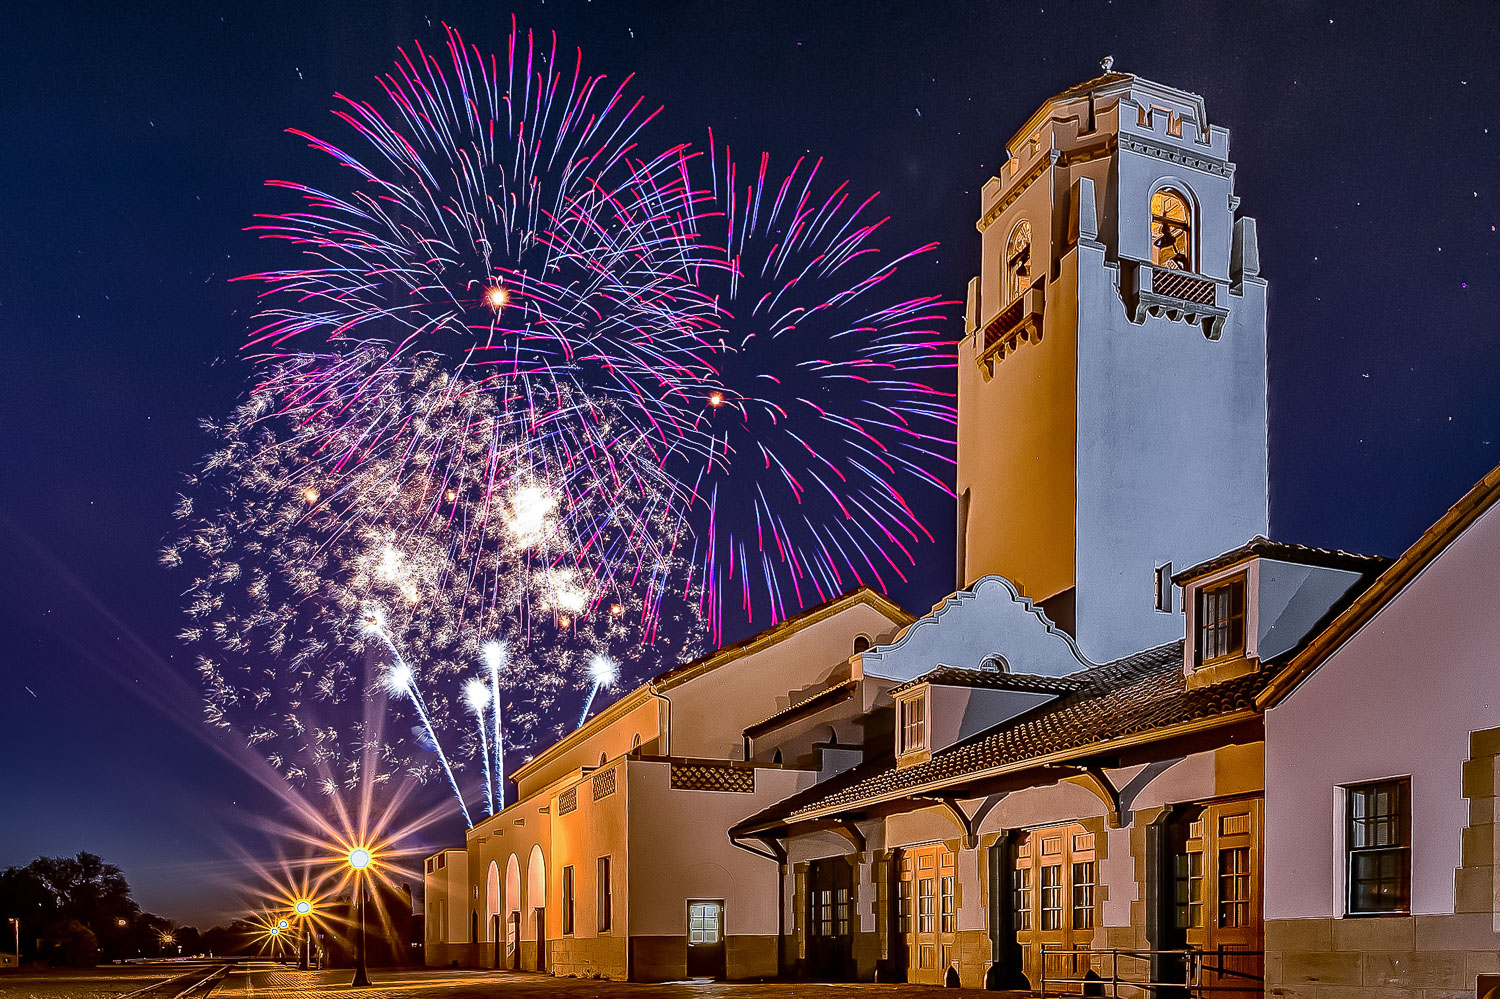 Image: Include a landmark, city skyline, or something in your fireworks photo to add interest, place...